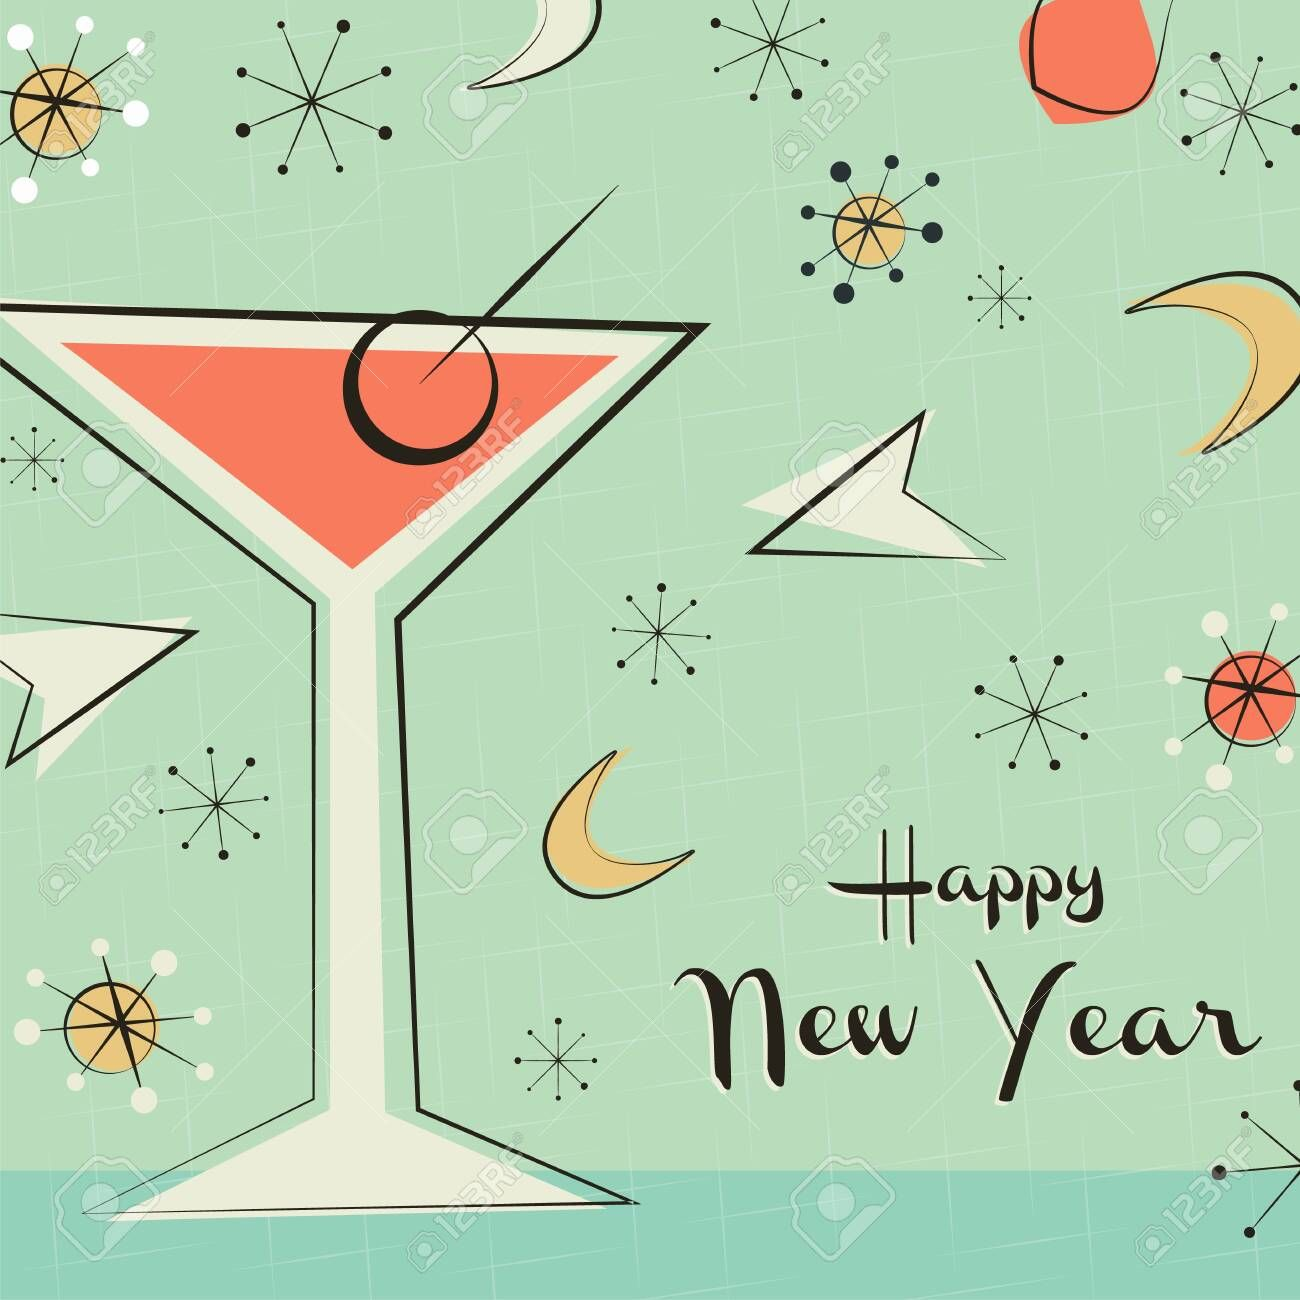 Happy new year greeting card illustration of retro style